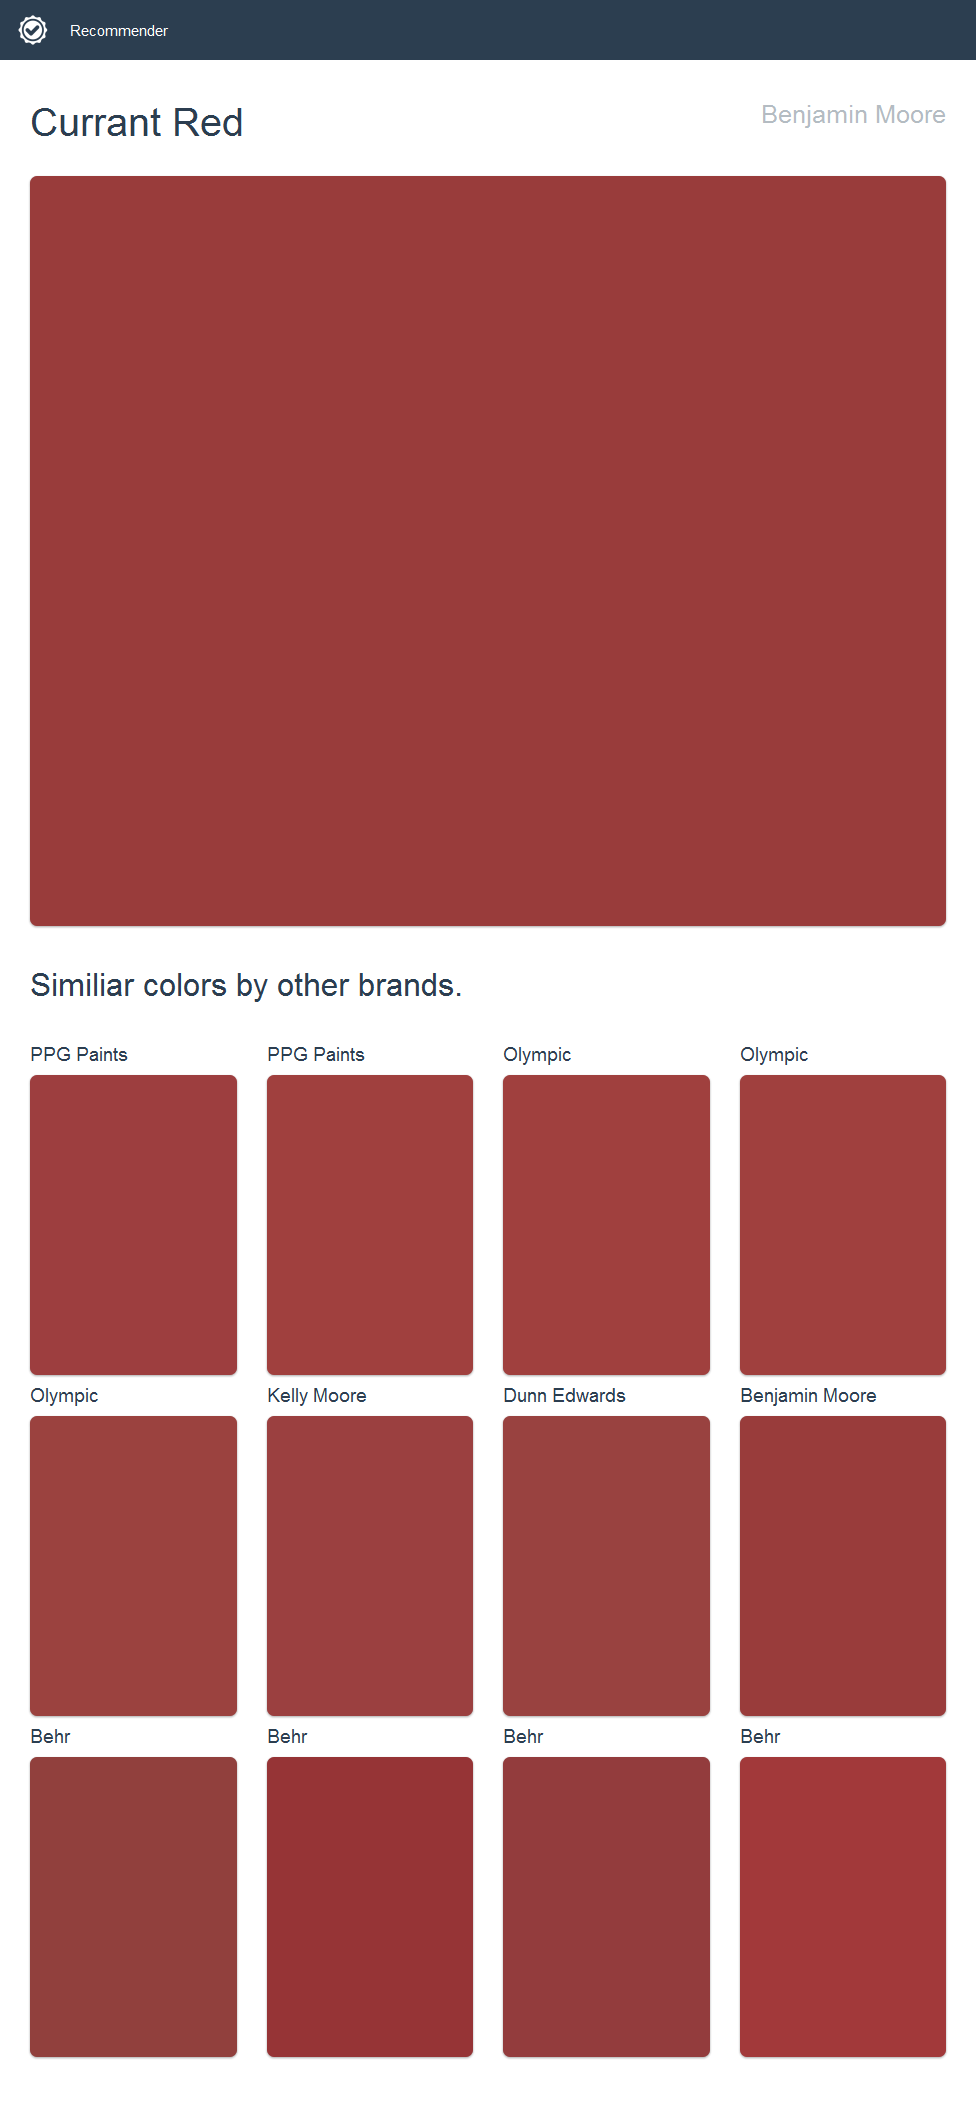 Currant Red Benjamin Moore